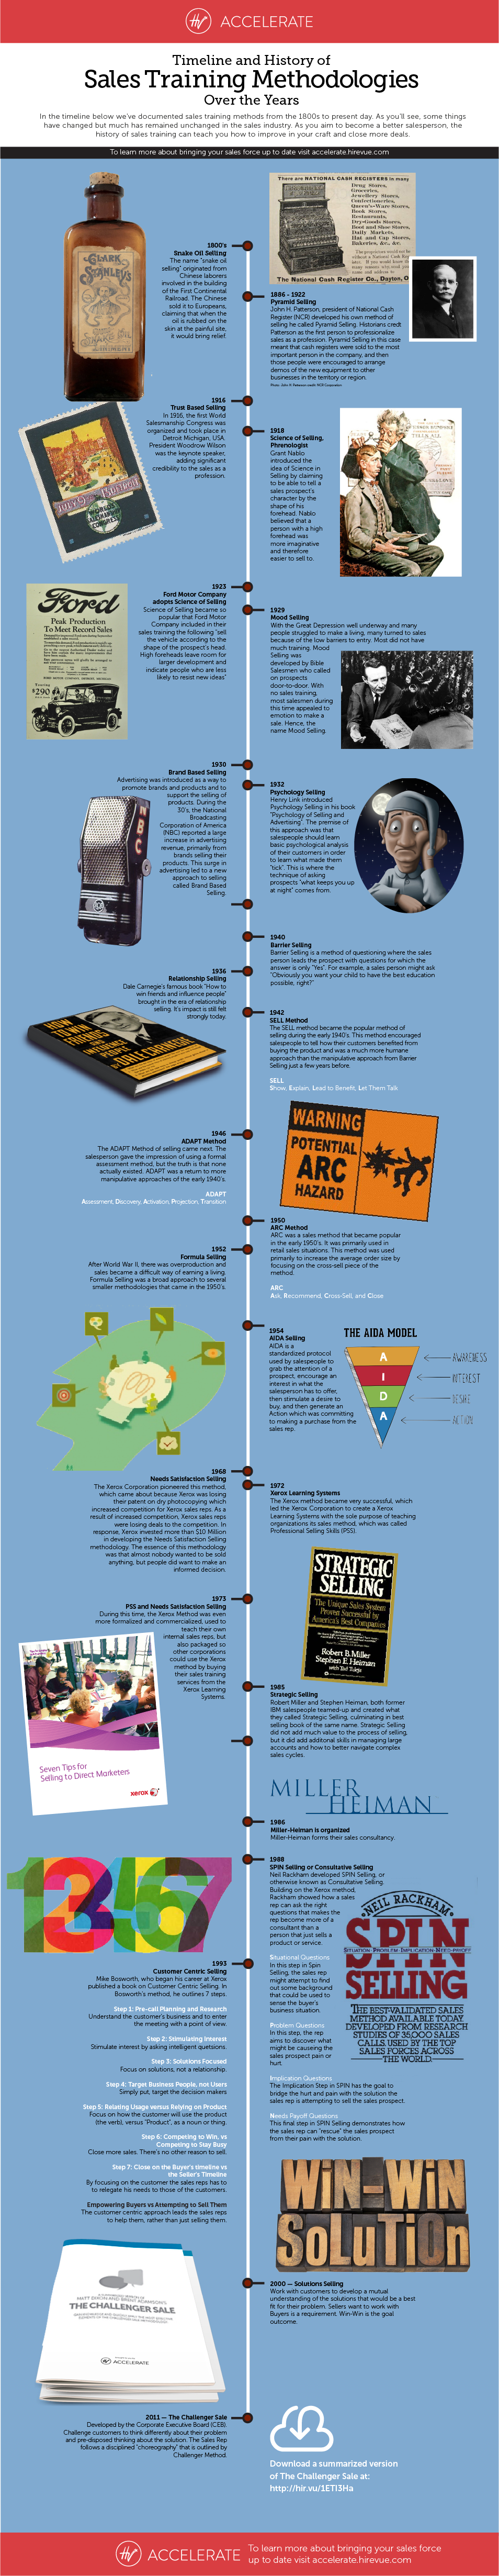 Making legal history approaches and methodologies ebook array a history of 21 sales methodologies infographic rh blog hubspot com fandeluxe Image collections